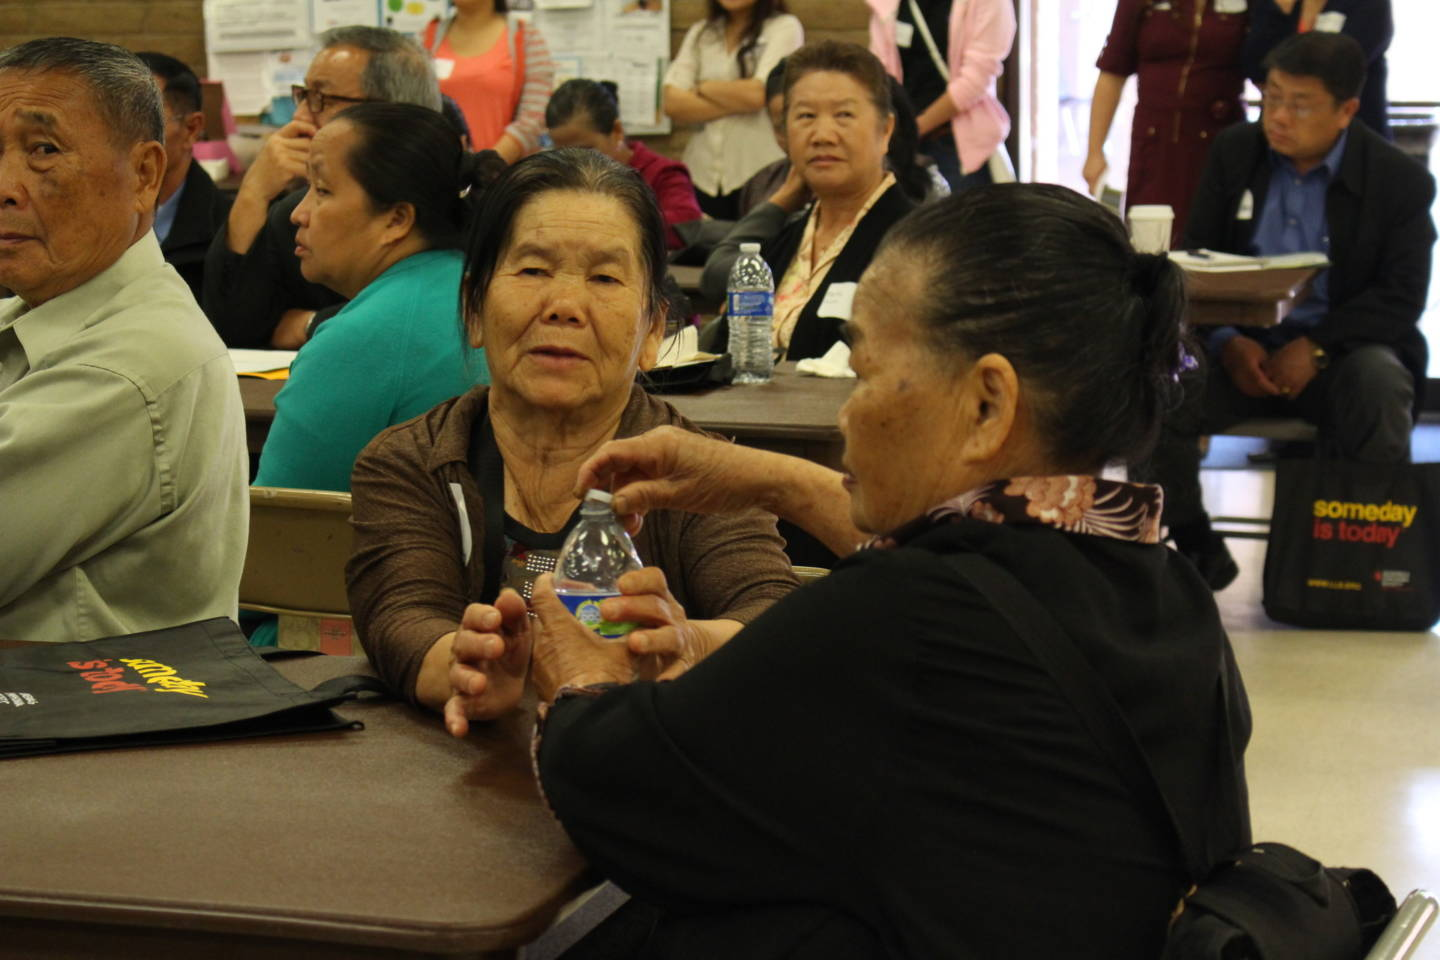 In Fresno, Cancer Screening Advocates Reach Out to Hmong Community